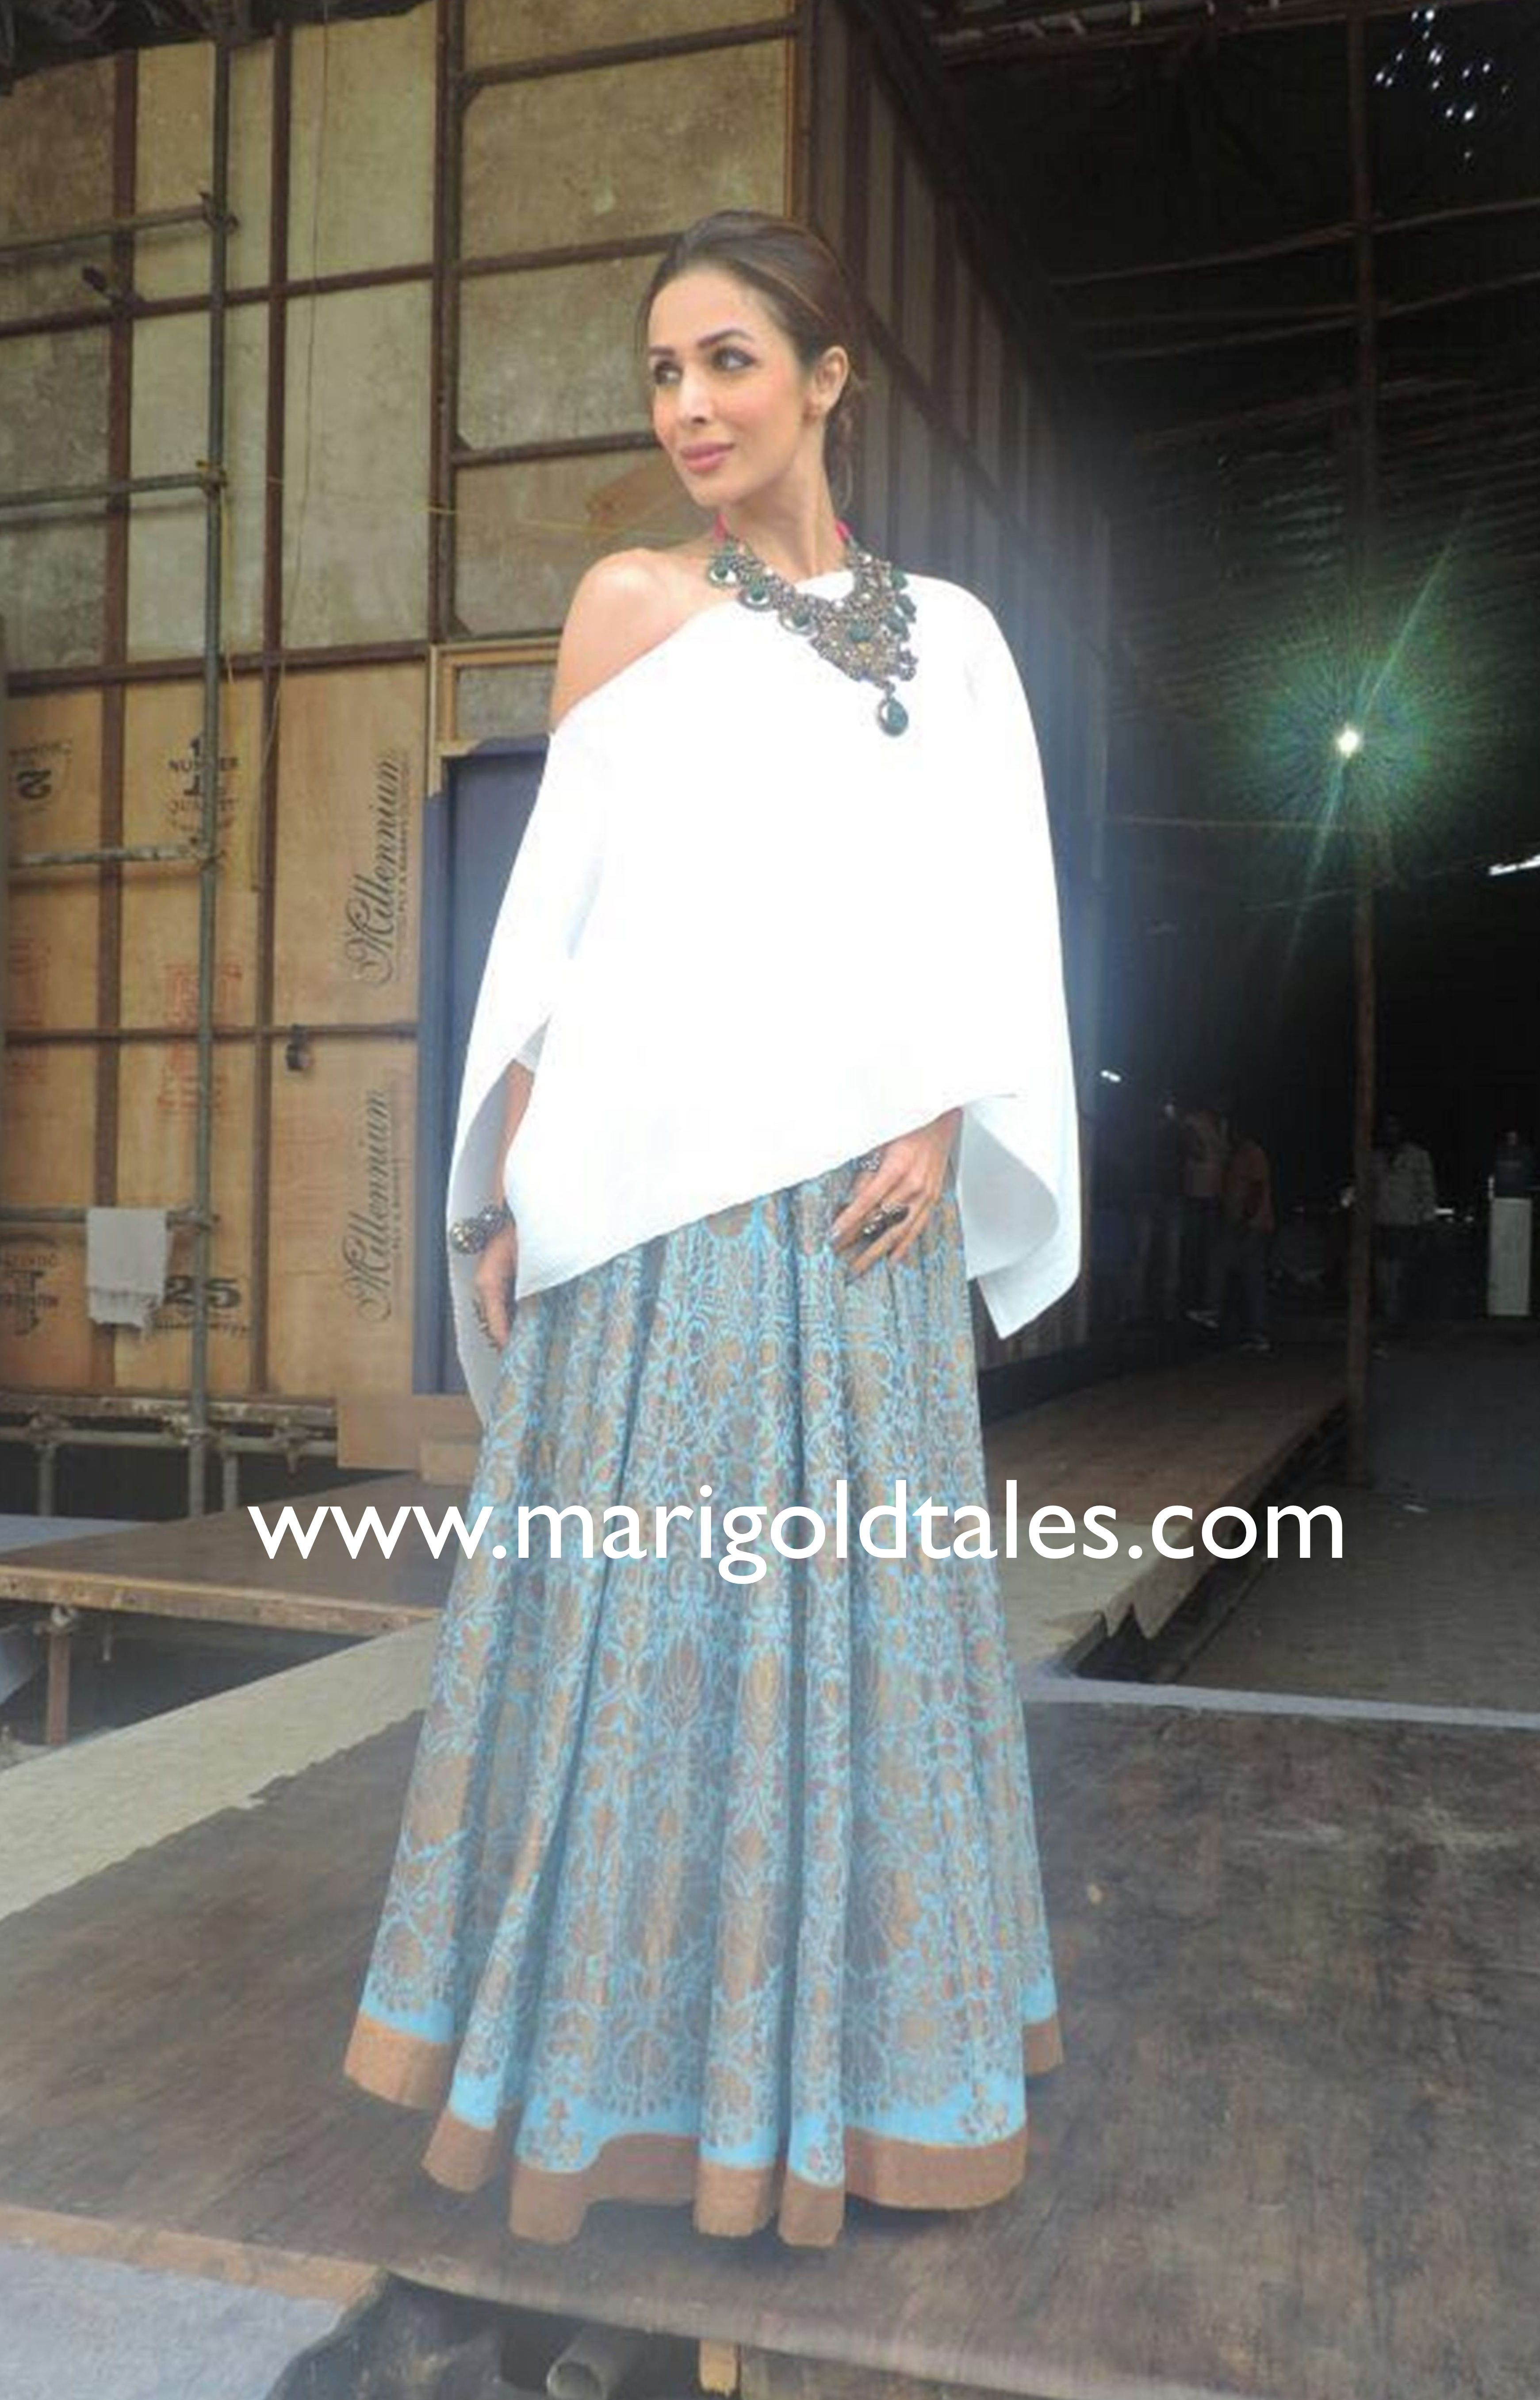 Comfortable Maxi Skirt Wedding Outfit Images - Wedding Ideas ...